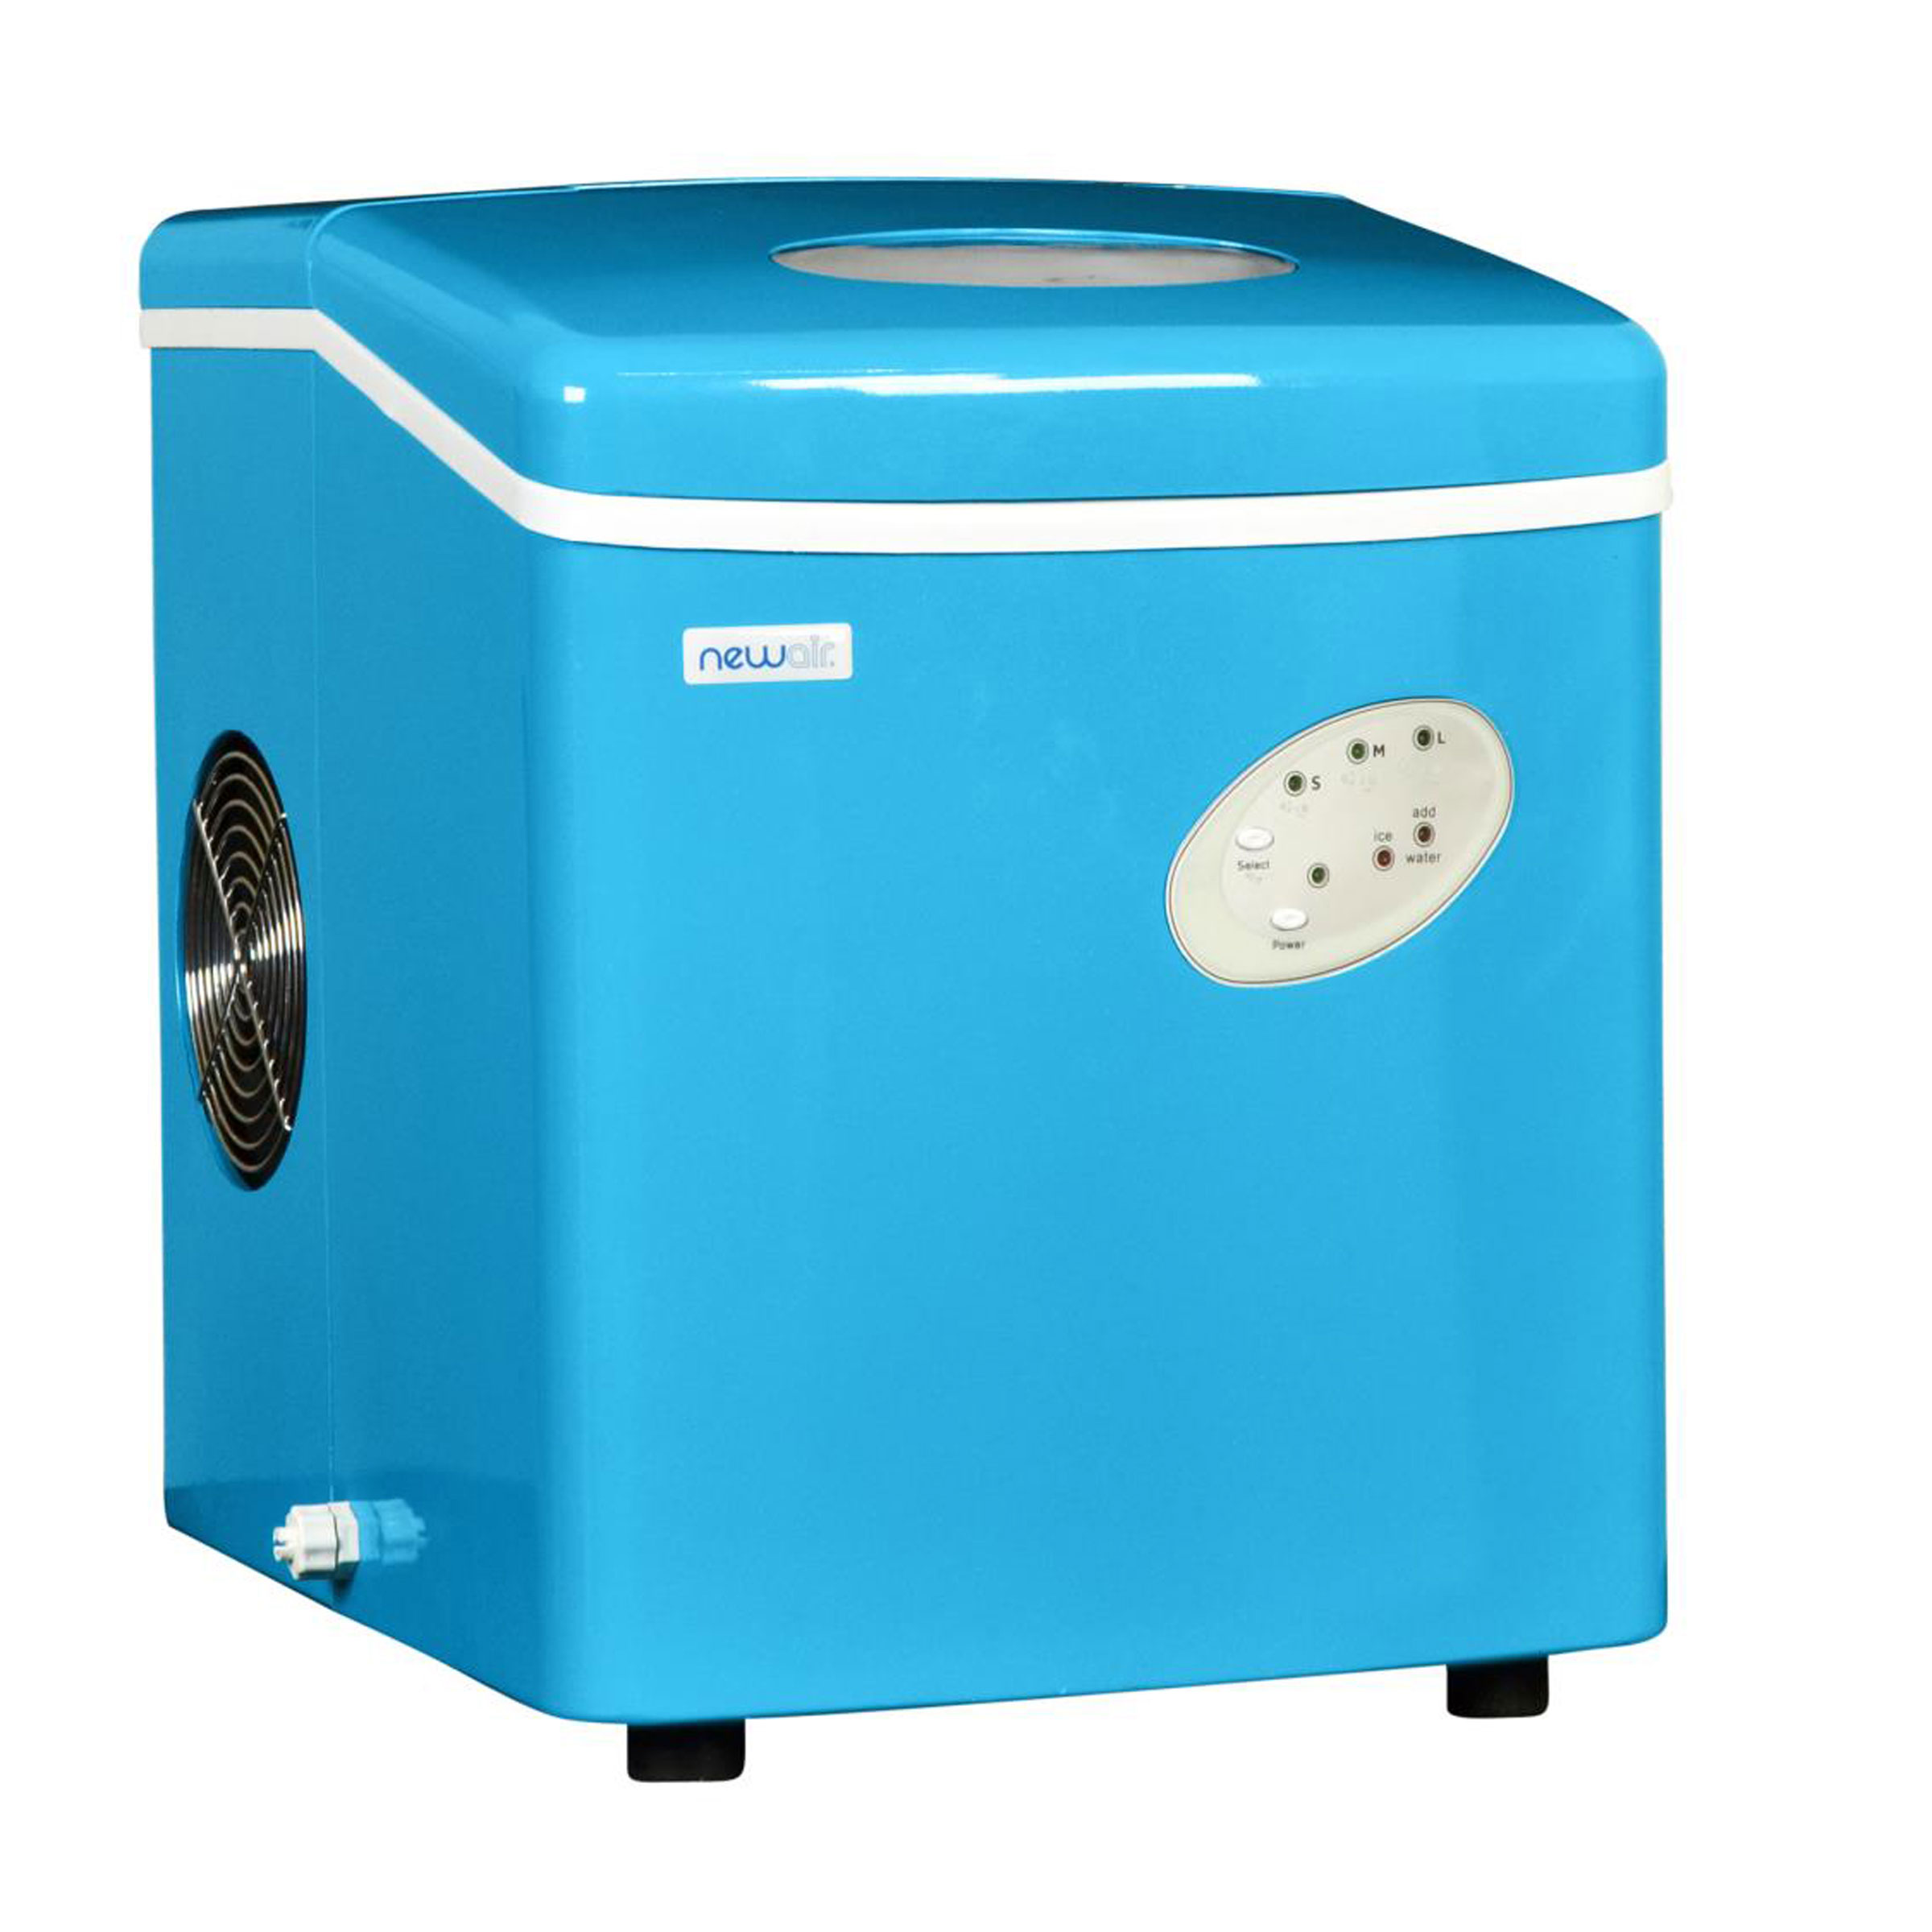 NEWAIR AI-100CB Portable Cyan Blue Ice Maker 28 lbs per day